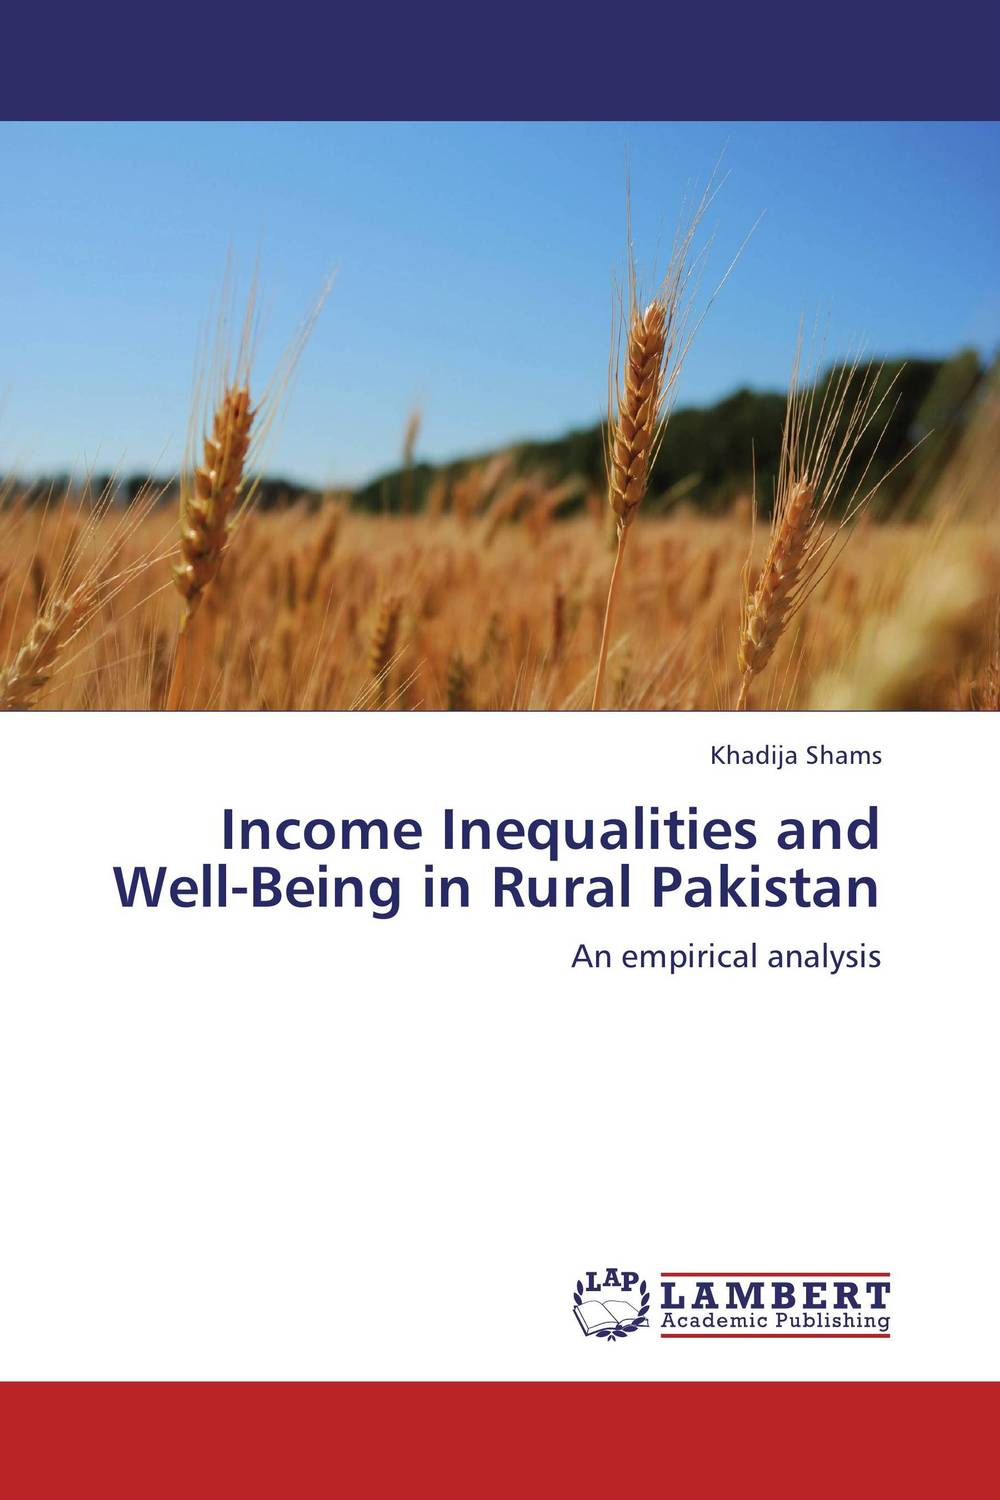 Income Inequalities and Well-Being in Rural Pakistan economic methodology